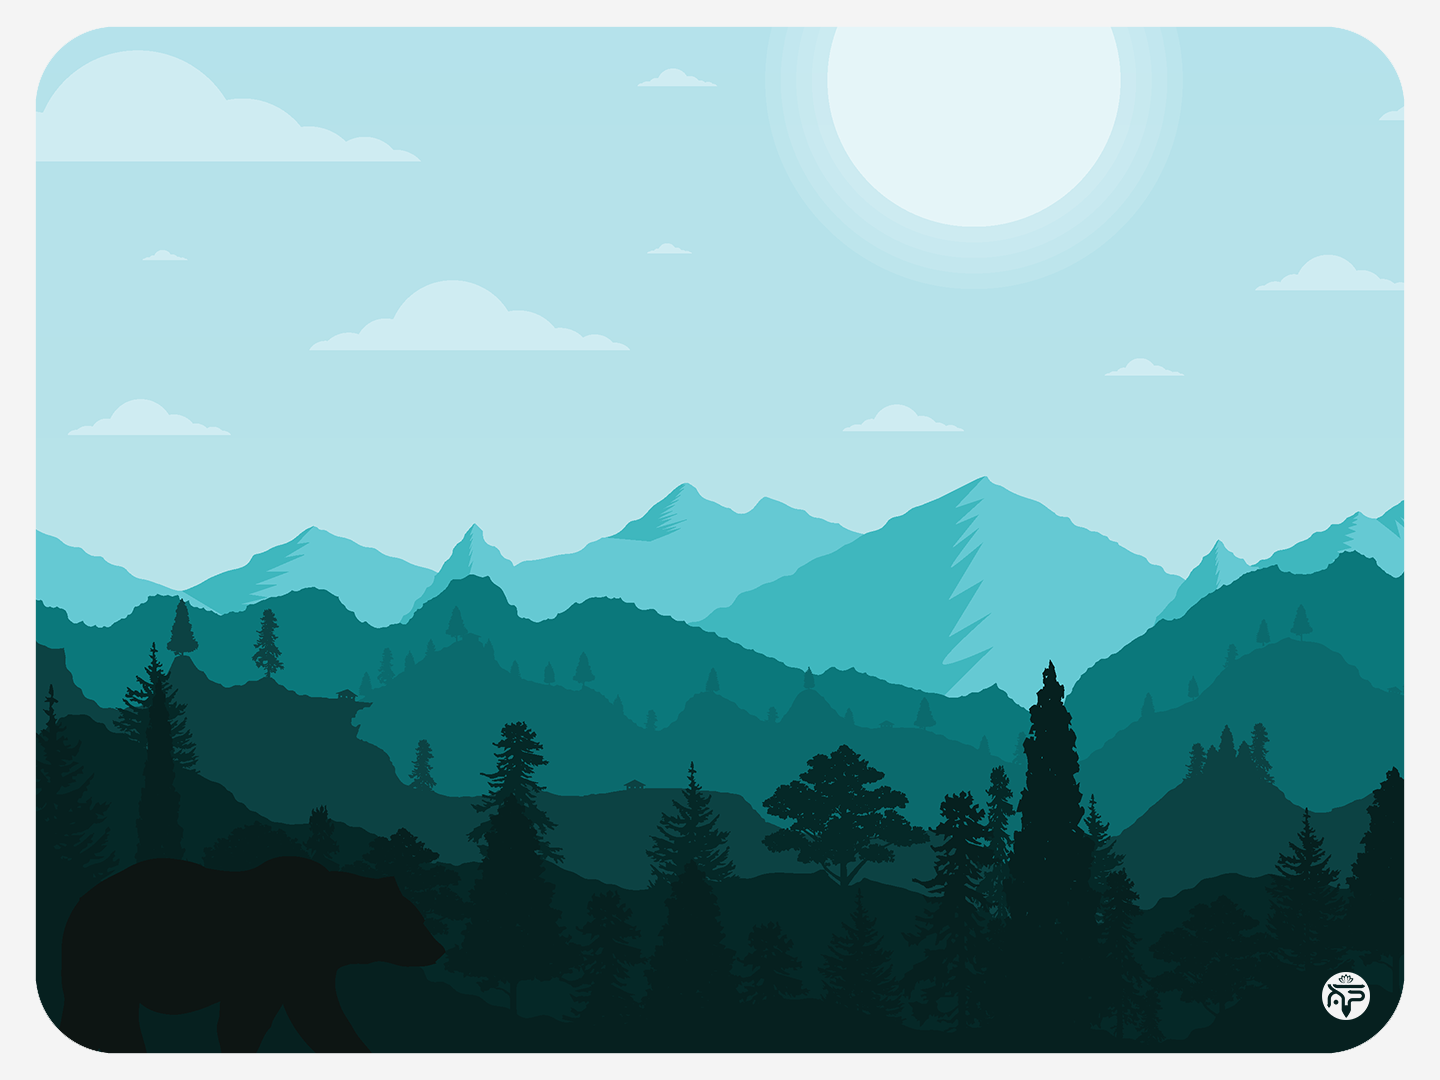 Landscape (pt 2) - Day flat illustration flat  design flatdesign sun bear clouds trees mountains landscape day illustration